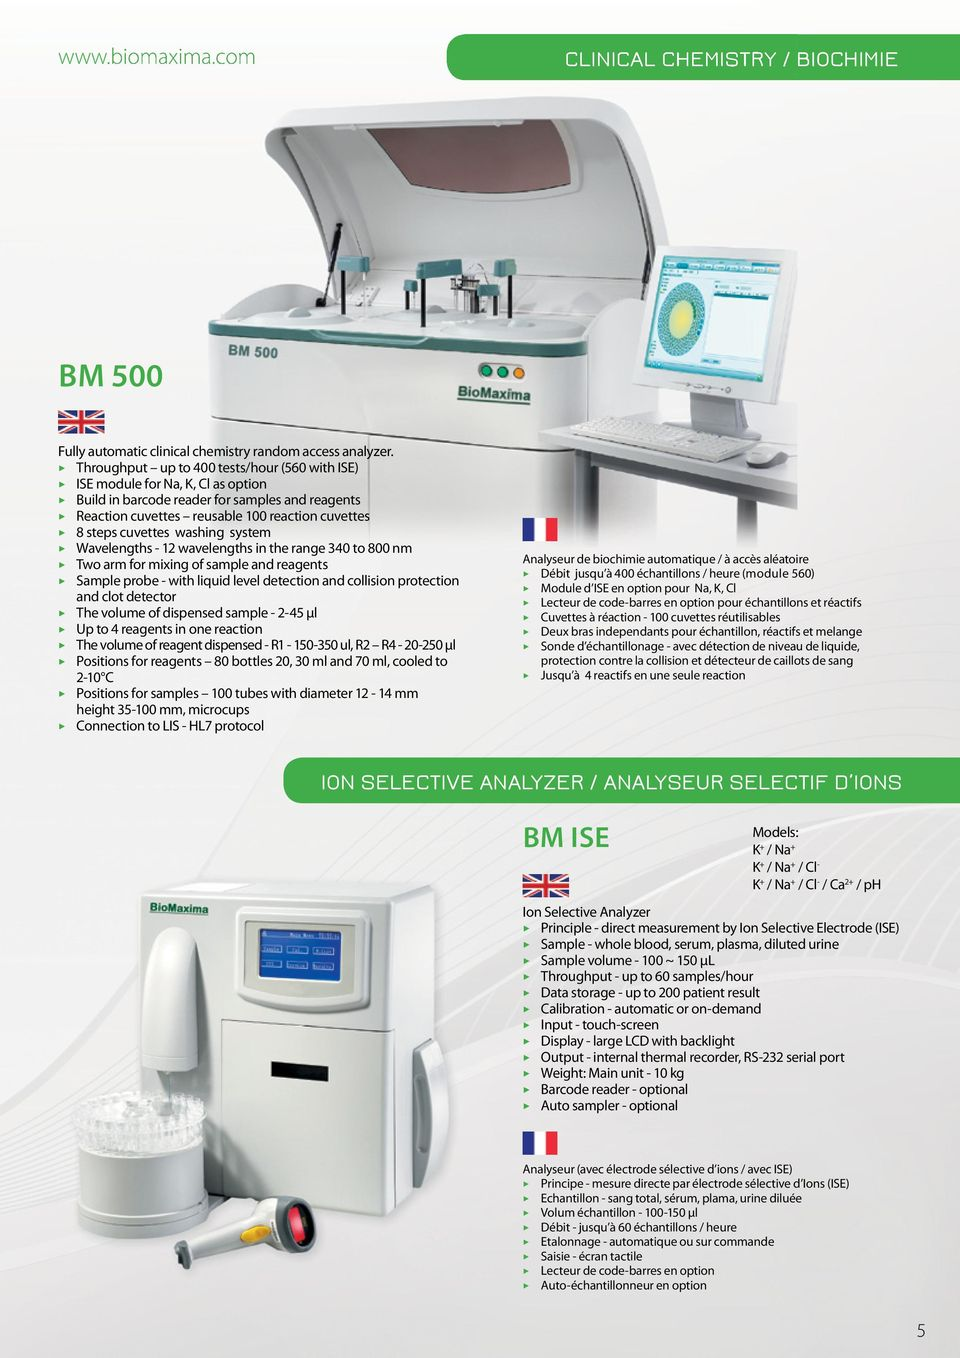 washing system Wavelengths - 12 wavelengths in the range 340 to 800 nm Two arm for mixing of sample and reagents Sample probe - with liquid level detection and collision protection and clot detector